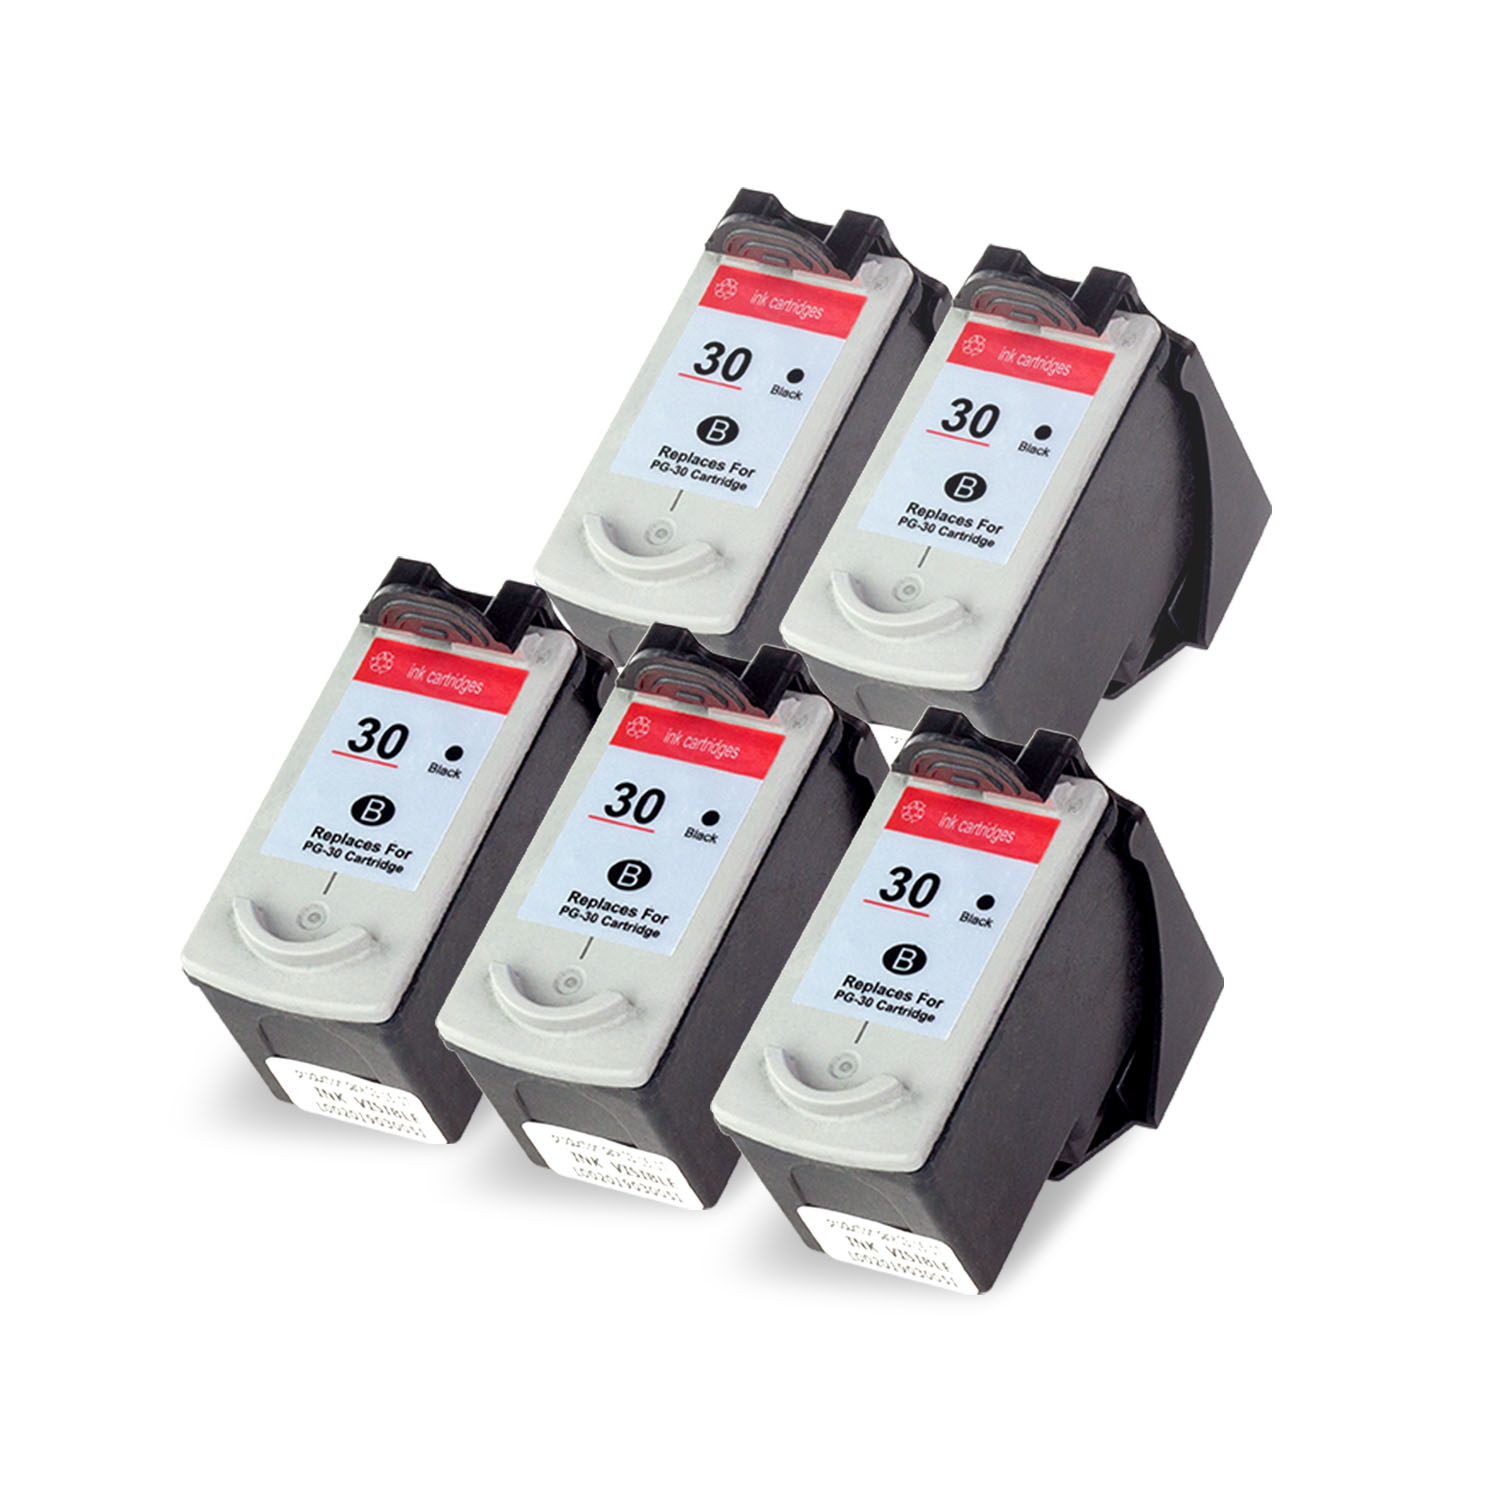 OFFICESMARTINK - PG30 Canon Cartridge Compatible [5 Pack] Black Ink Cartridge w/ Auto-Reset Ink for Canon PIXMA iP1800, iP2600, MP140, MP190, MP210, MP470, MX300, MX310